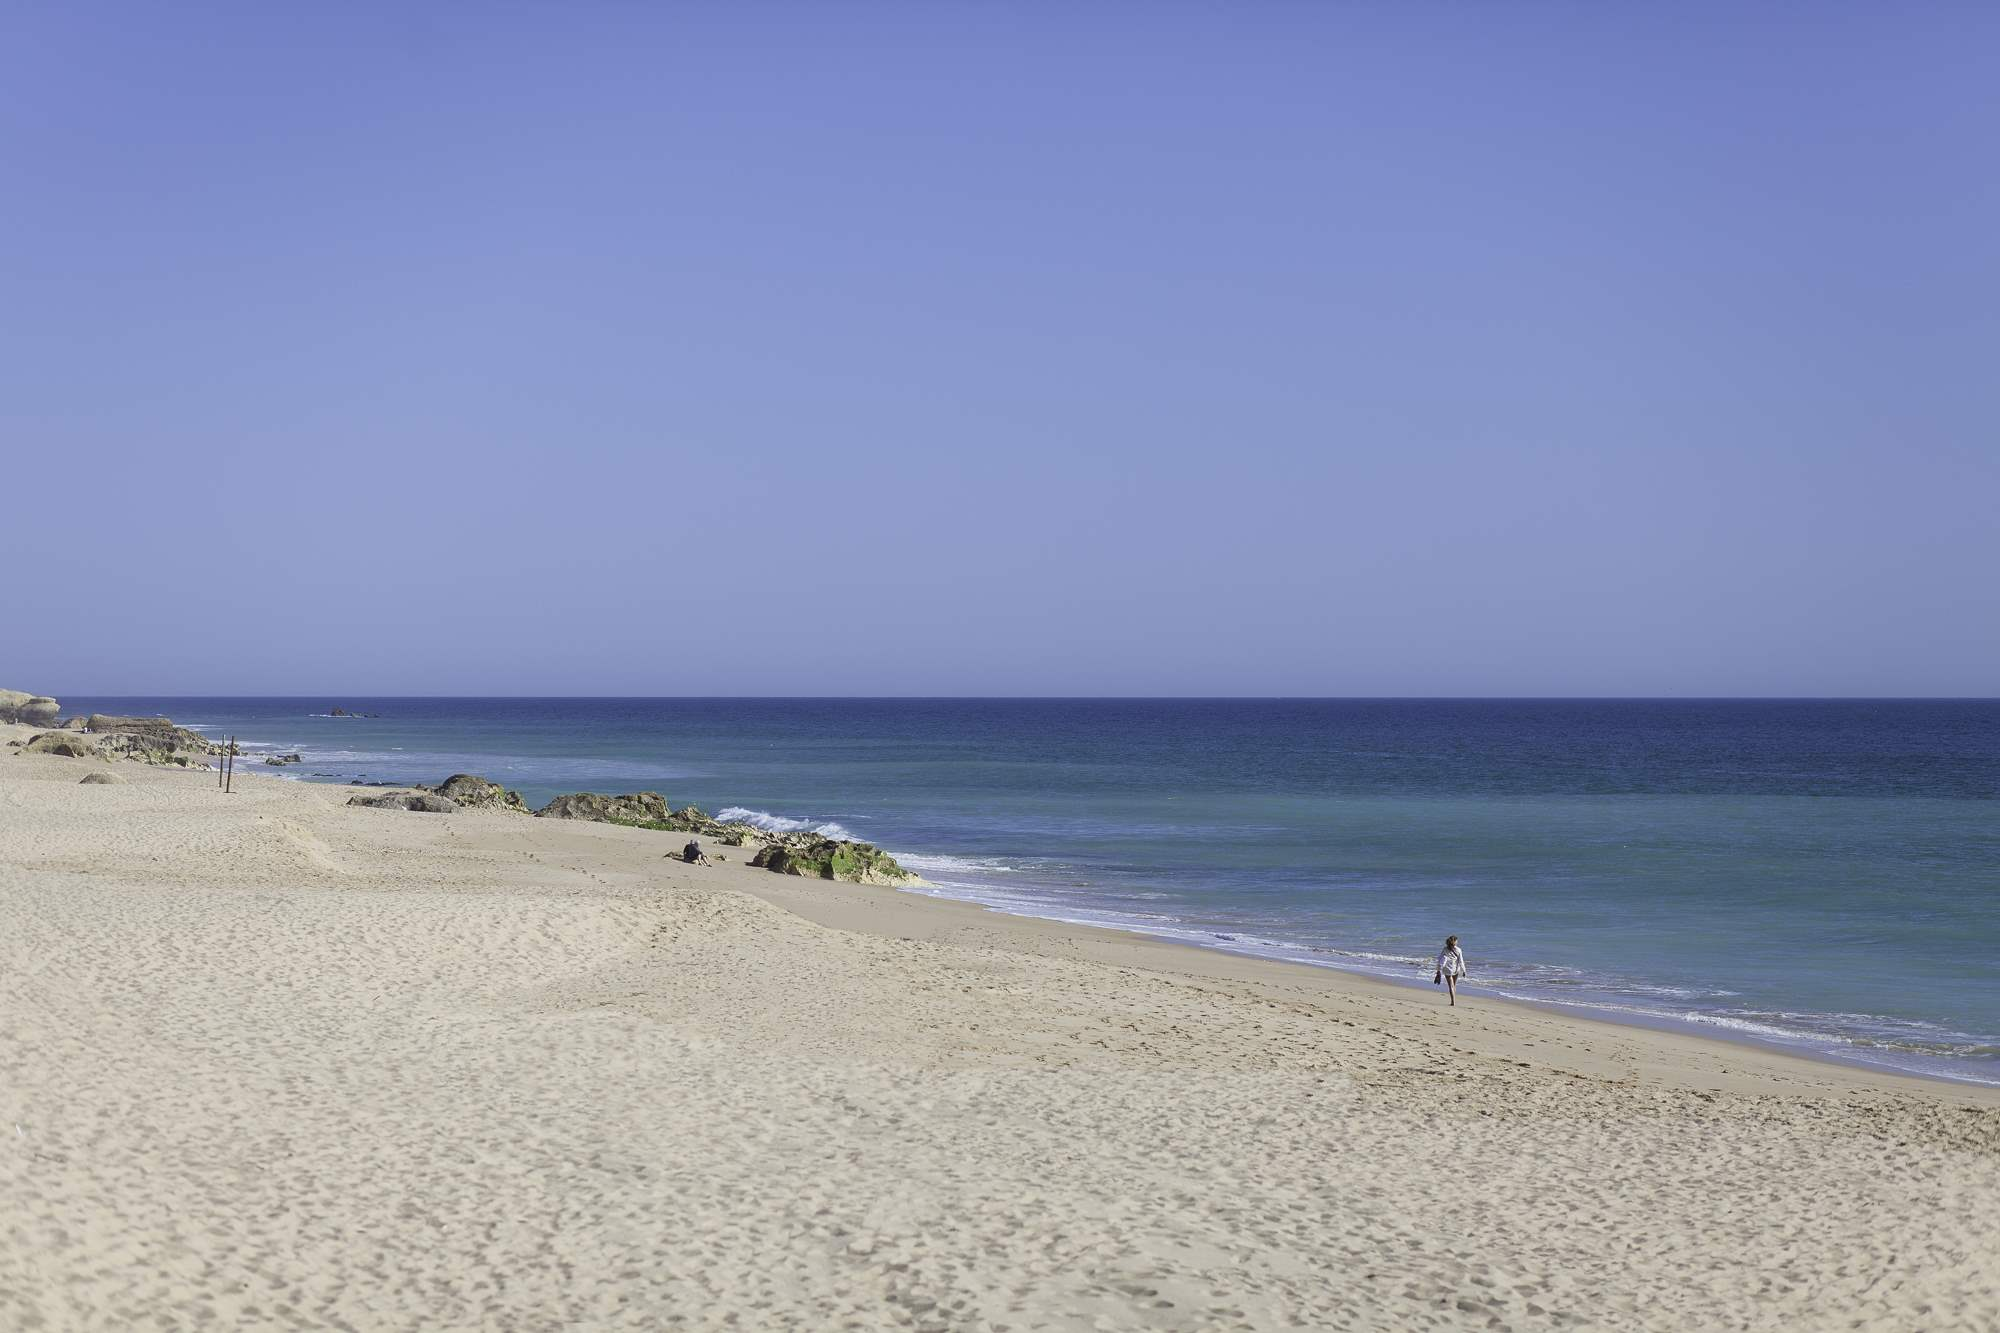 Vidamar Hotel Ocean View Room, HB, Double Room, 1 bedroom hotel in Vidamar Resort, Algarve Photo #19